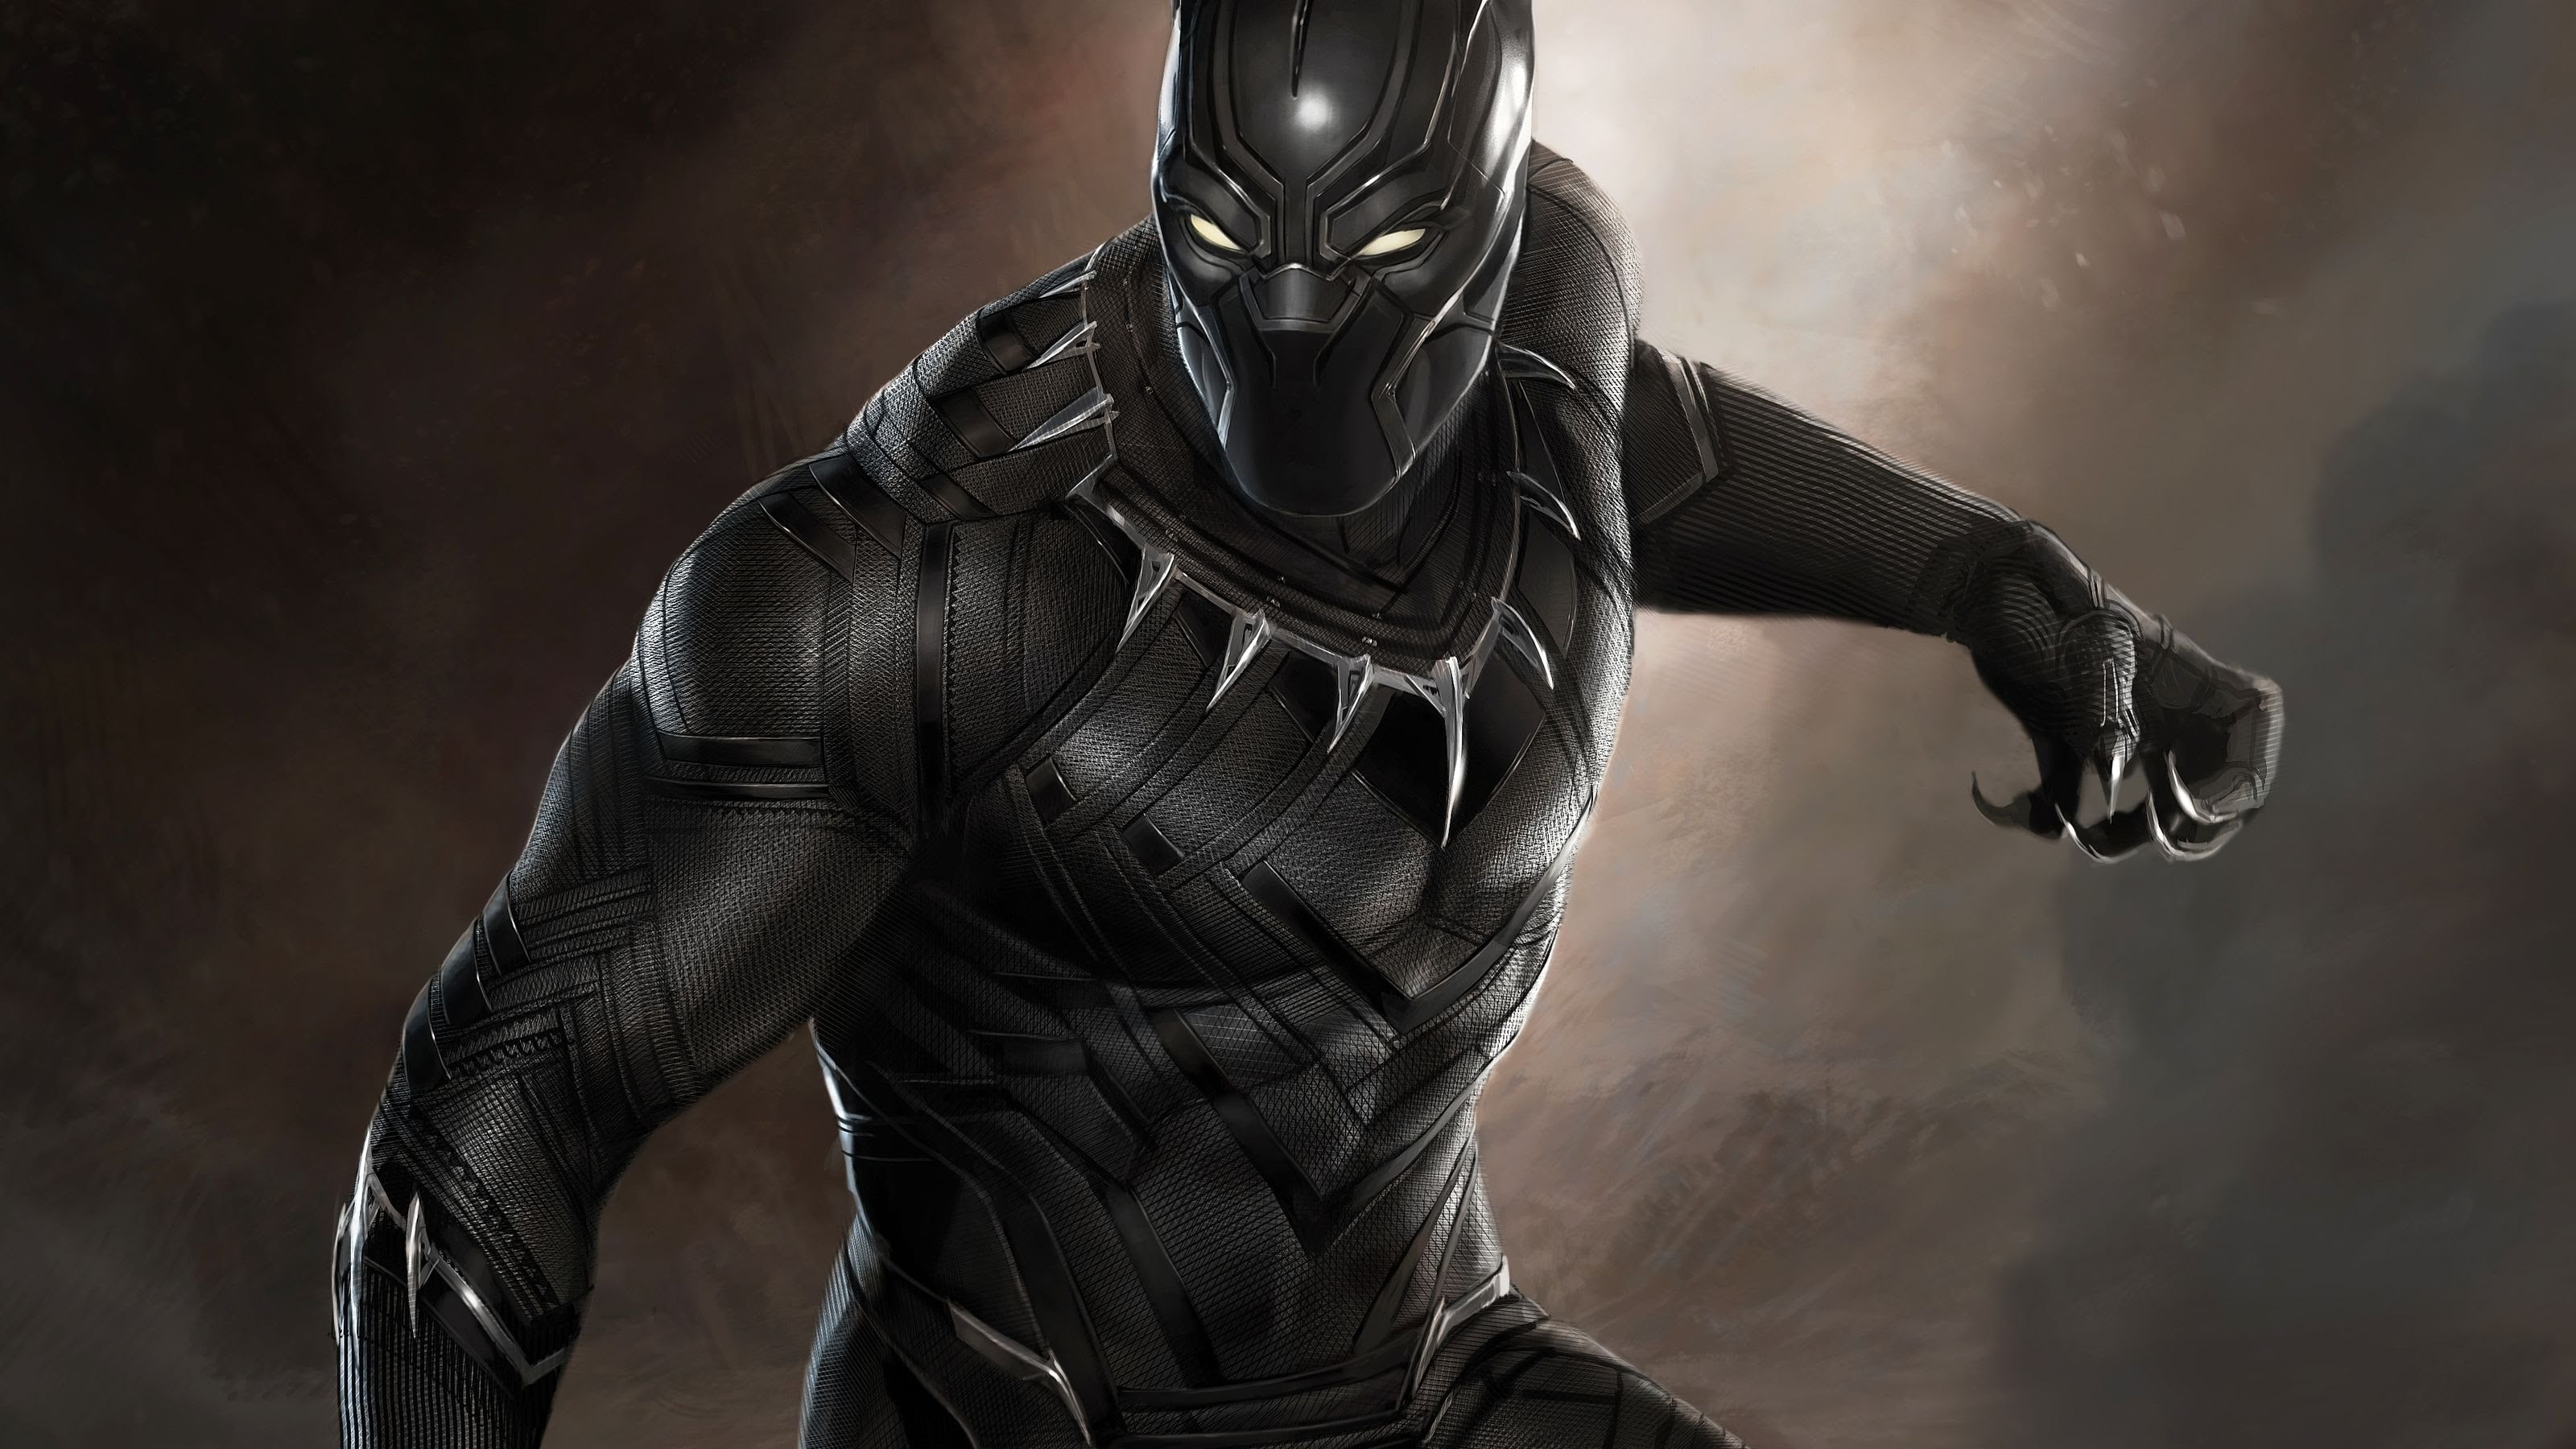 Is Black Panther Good Or Bad In Captain America Civil War His